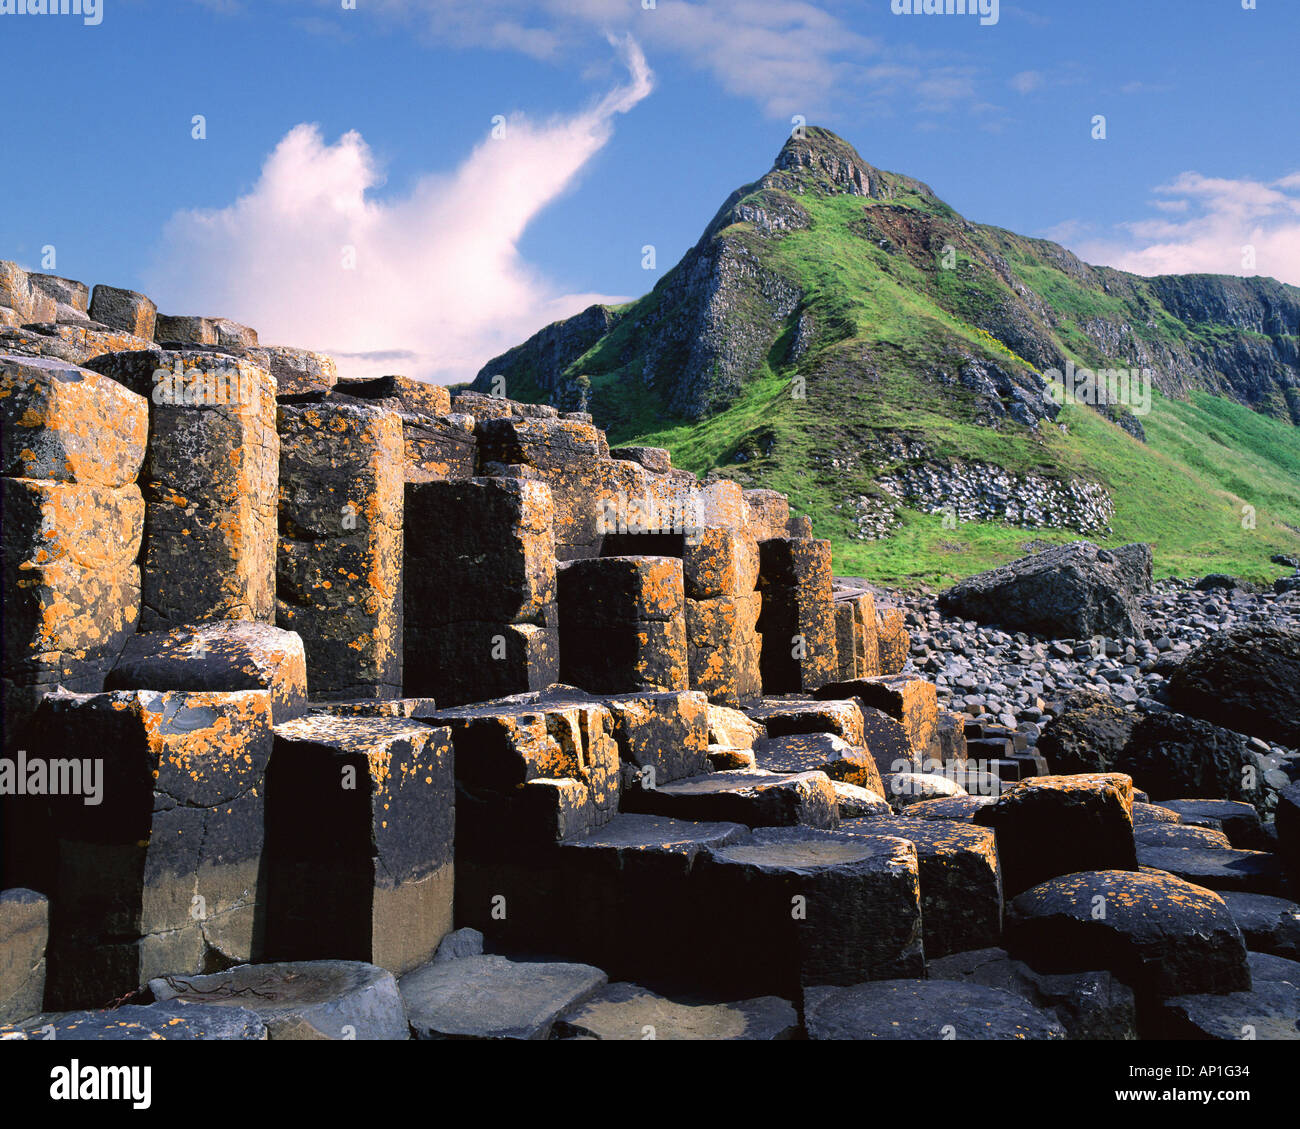 GB - NORTHERN IRELAND: Giants Causeway - Stock Image